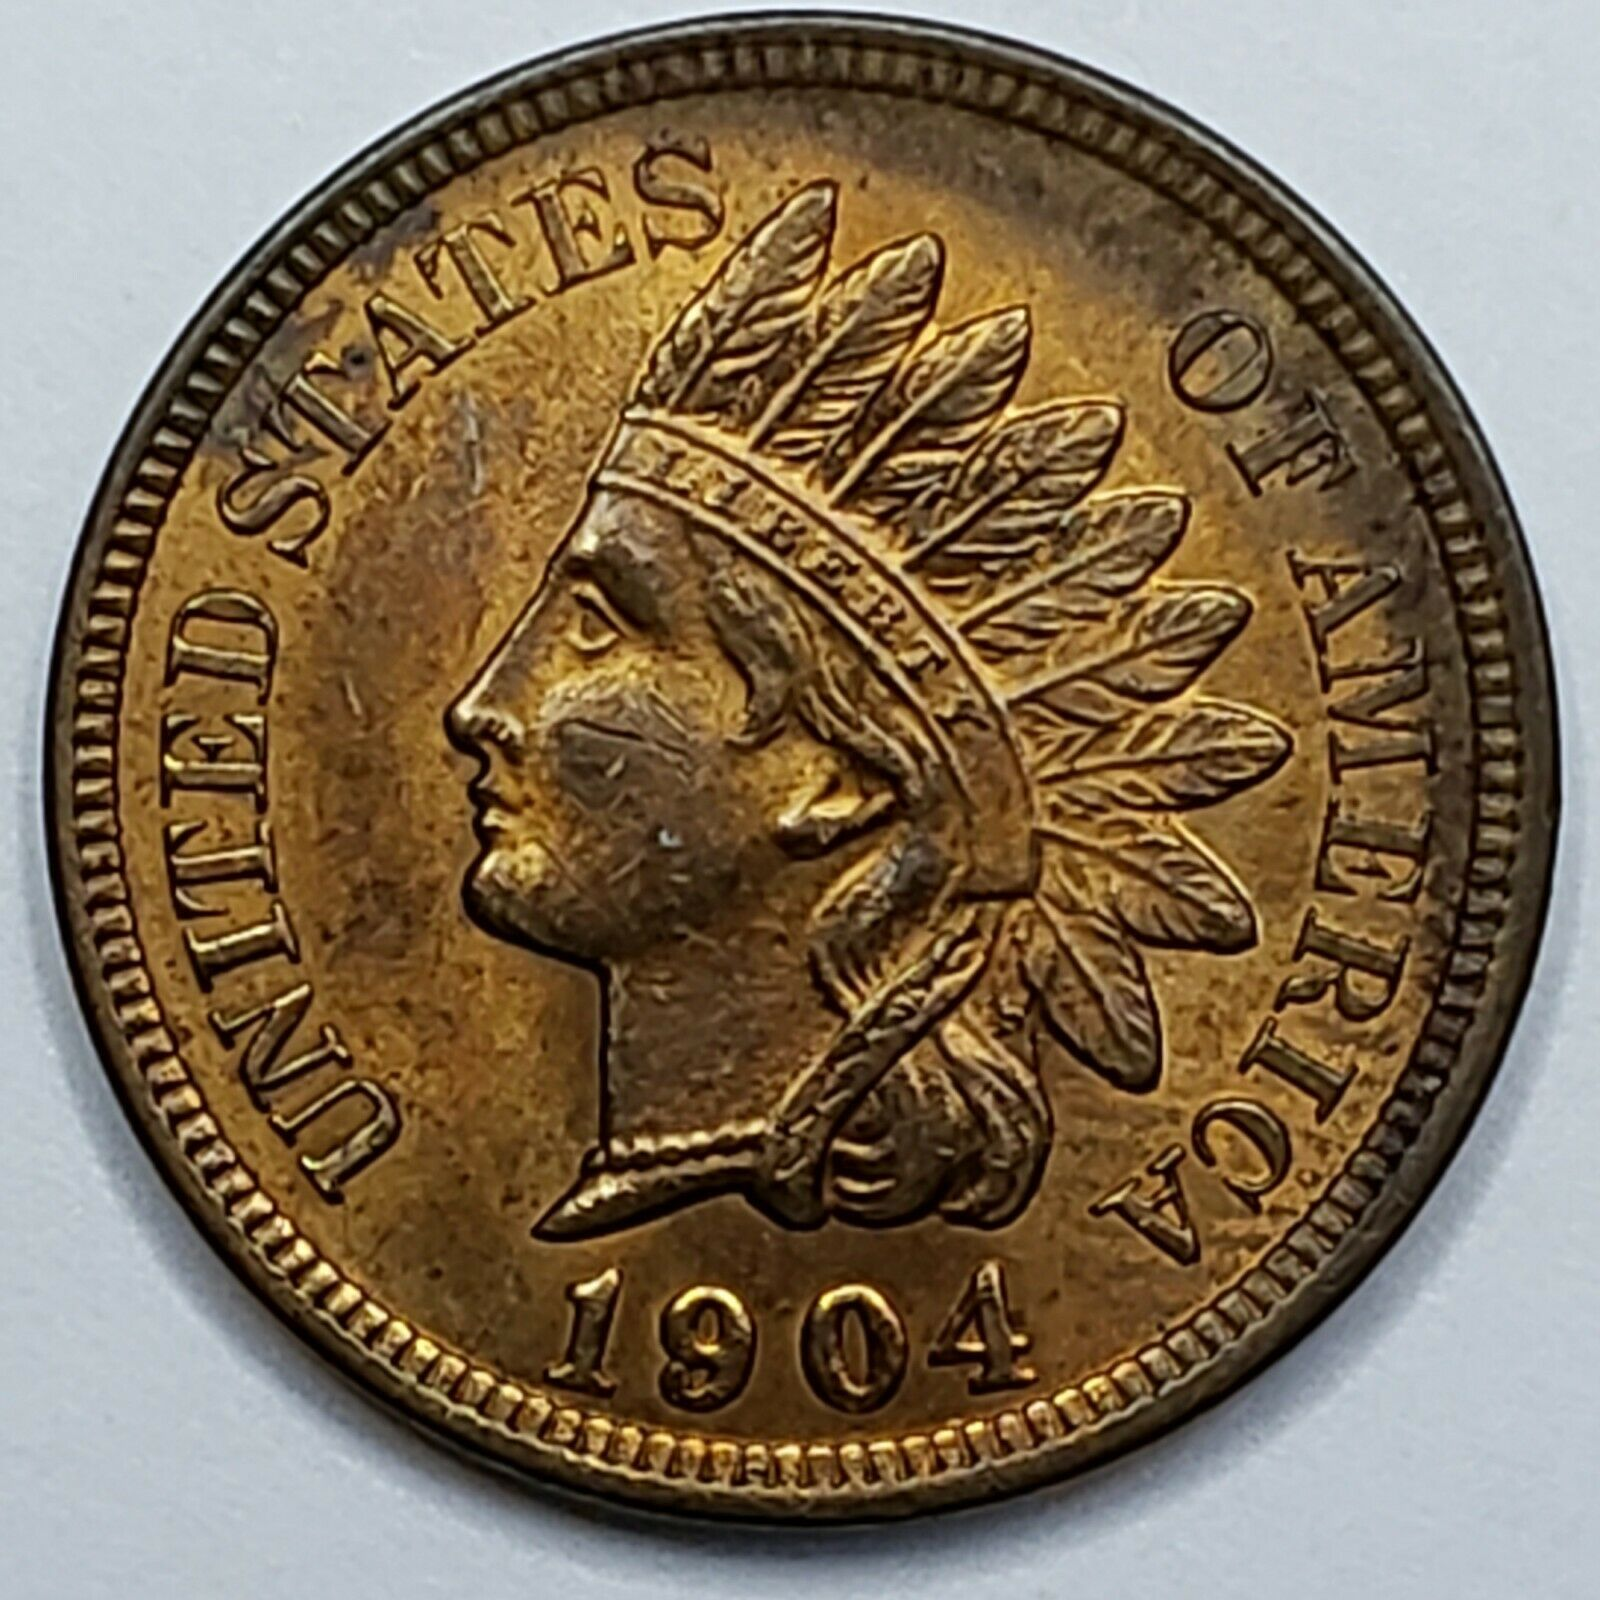 1904 Indian Head Cent Penny Coin Lot 519-96